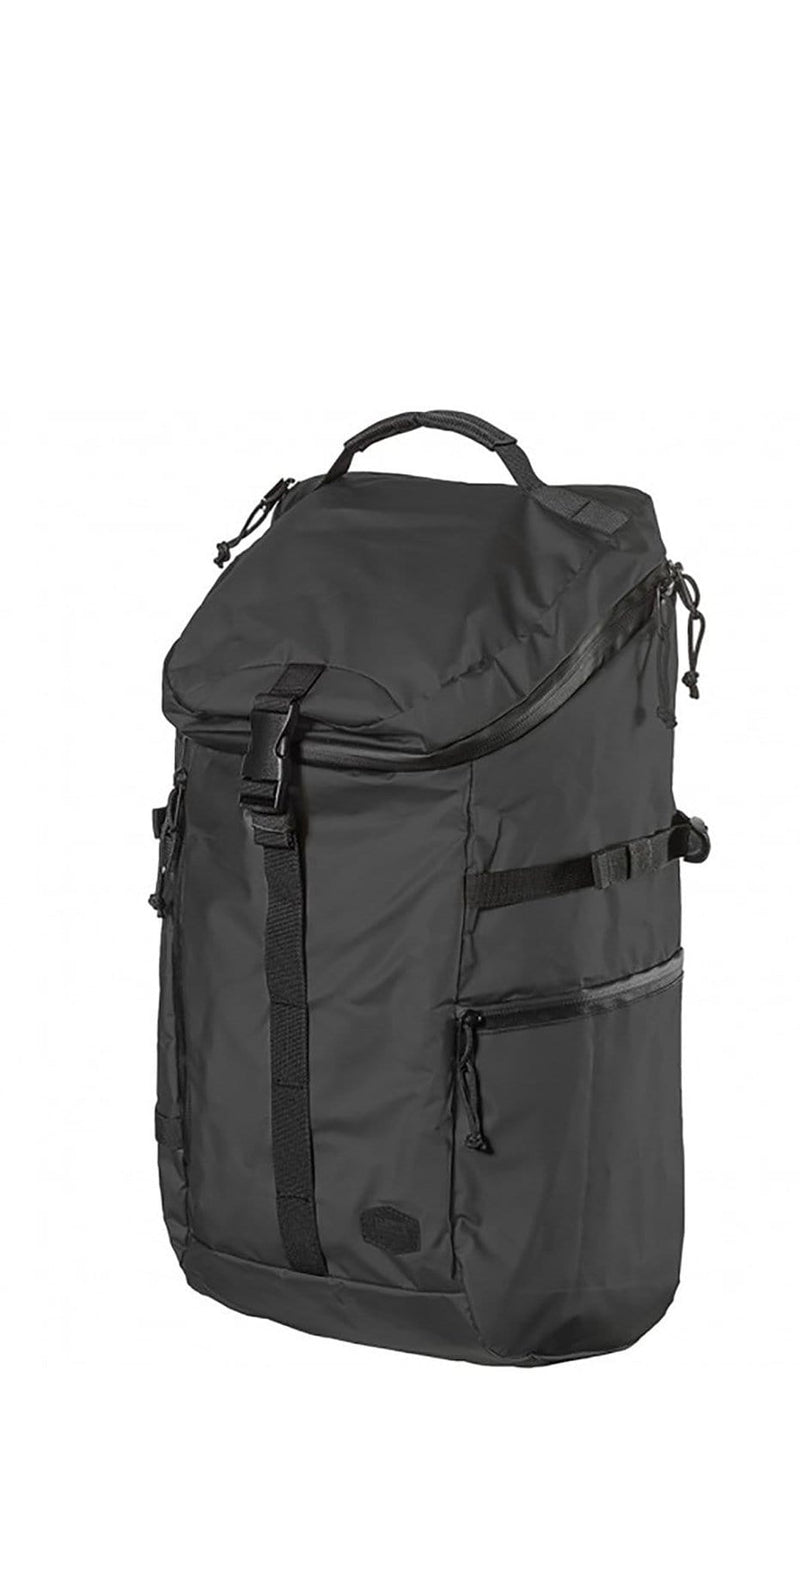 Shadow Backpack Black Globe - Jean Jail